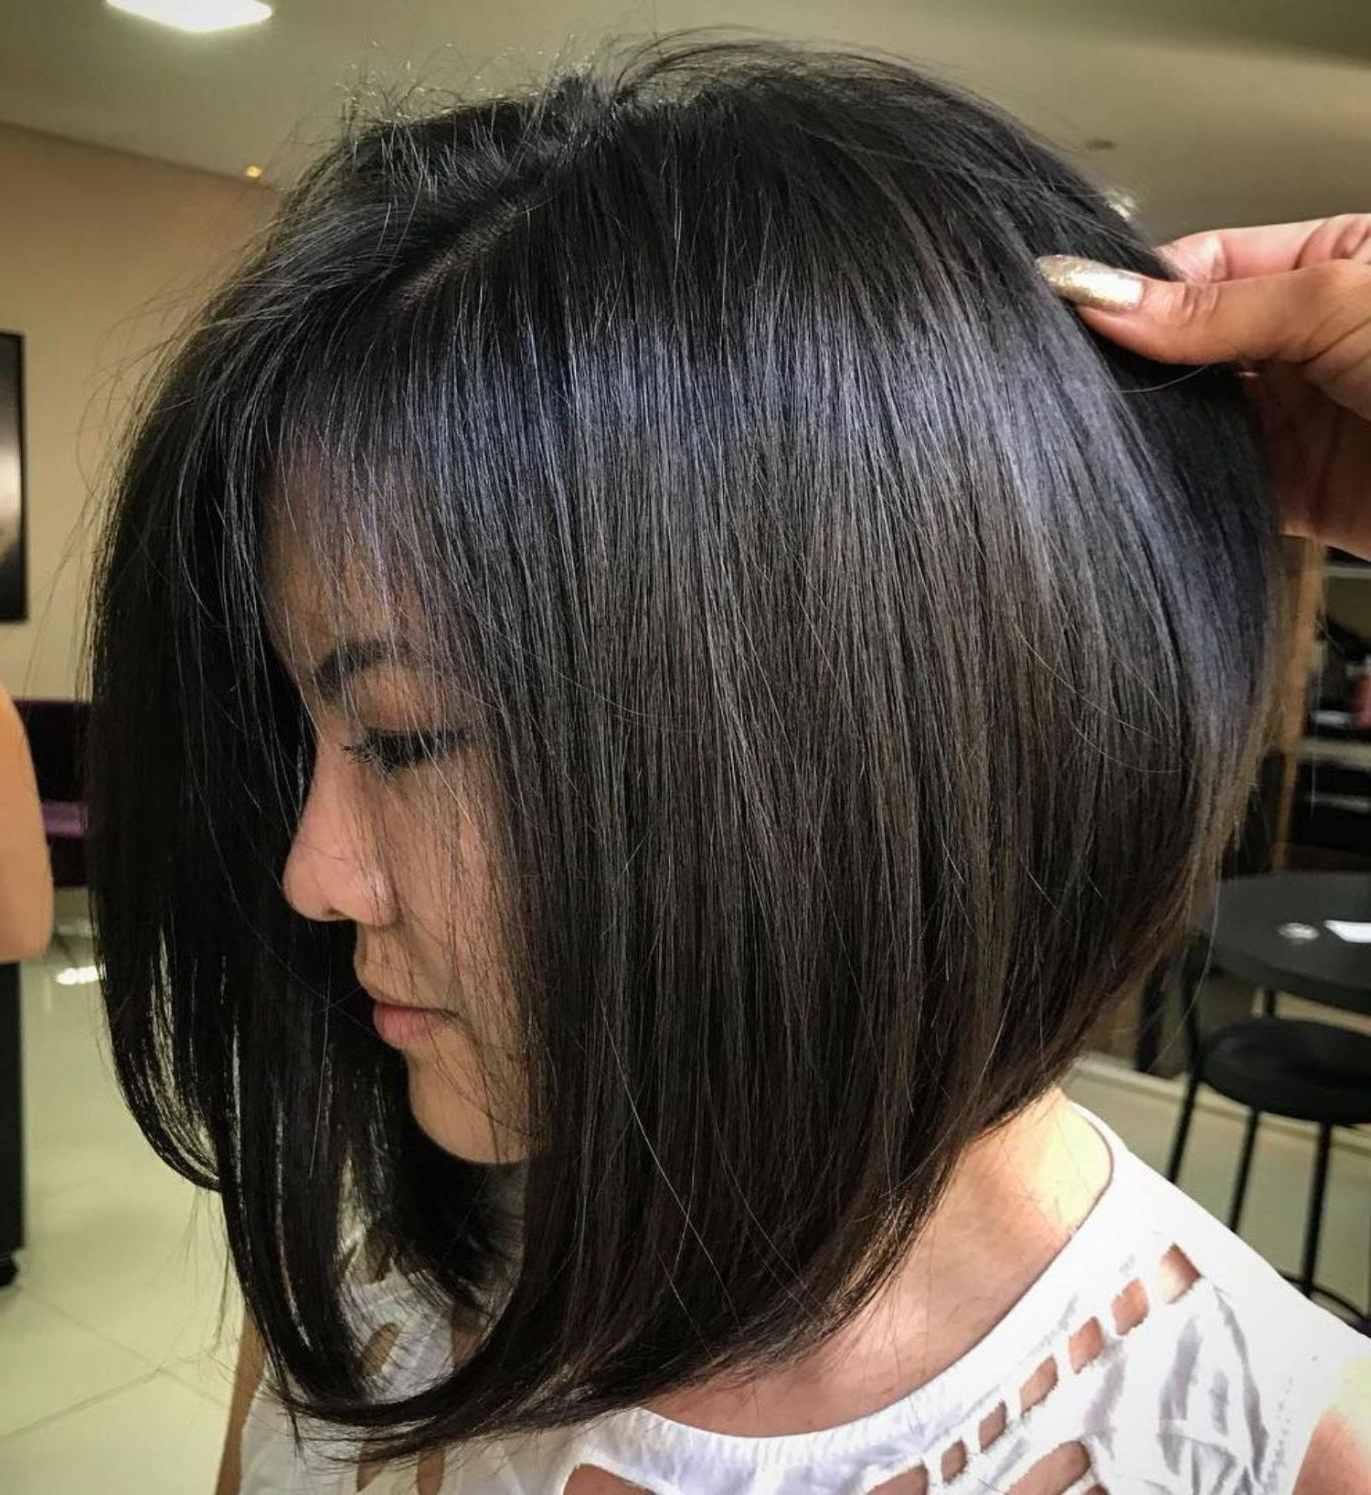 Pin On My Style Inside A Line Bob Hairstyles With Arched Bangs (View 2 of 20)